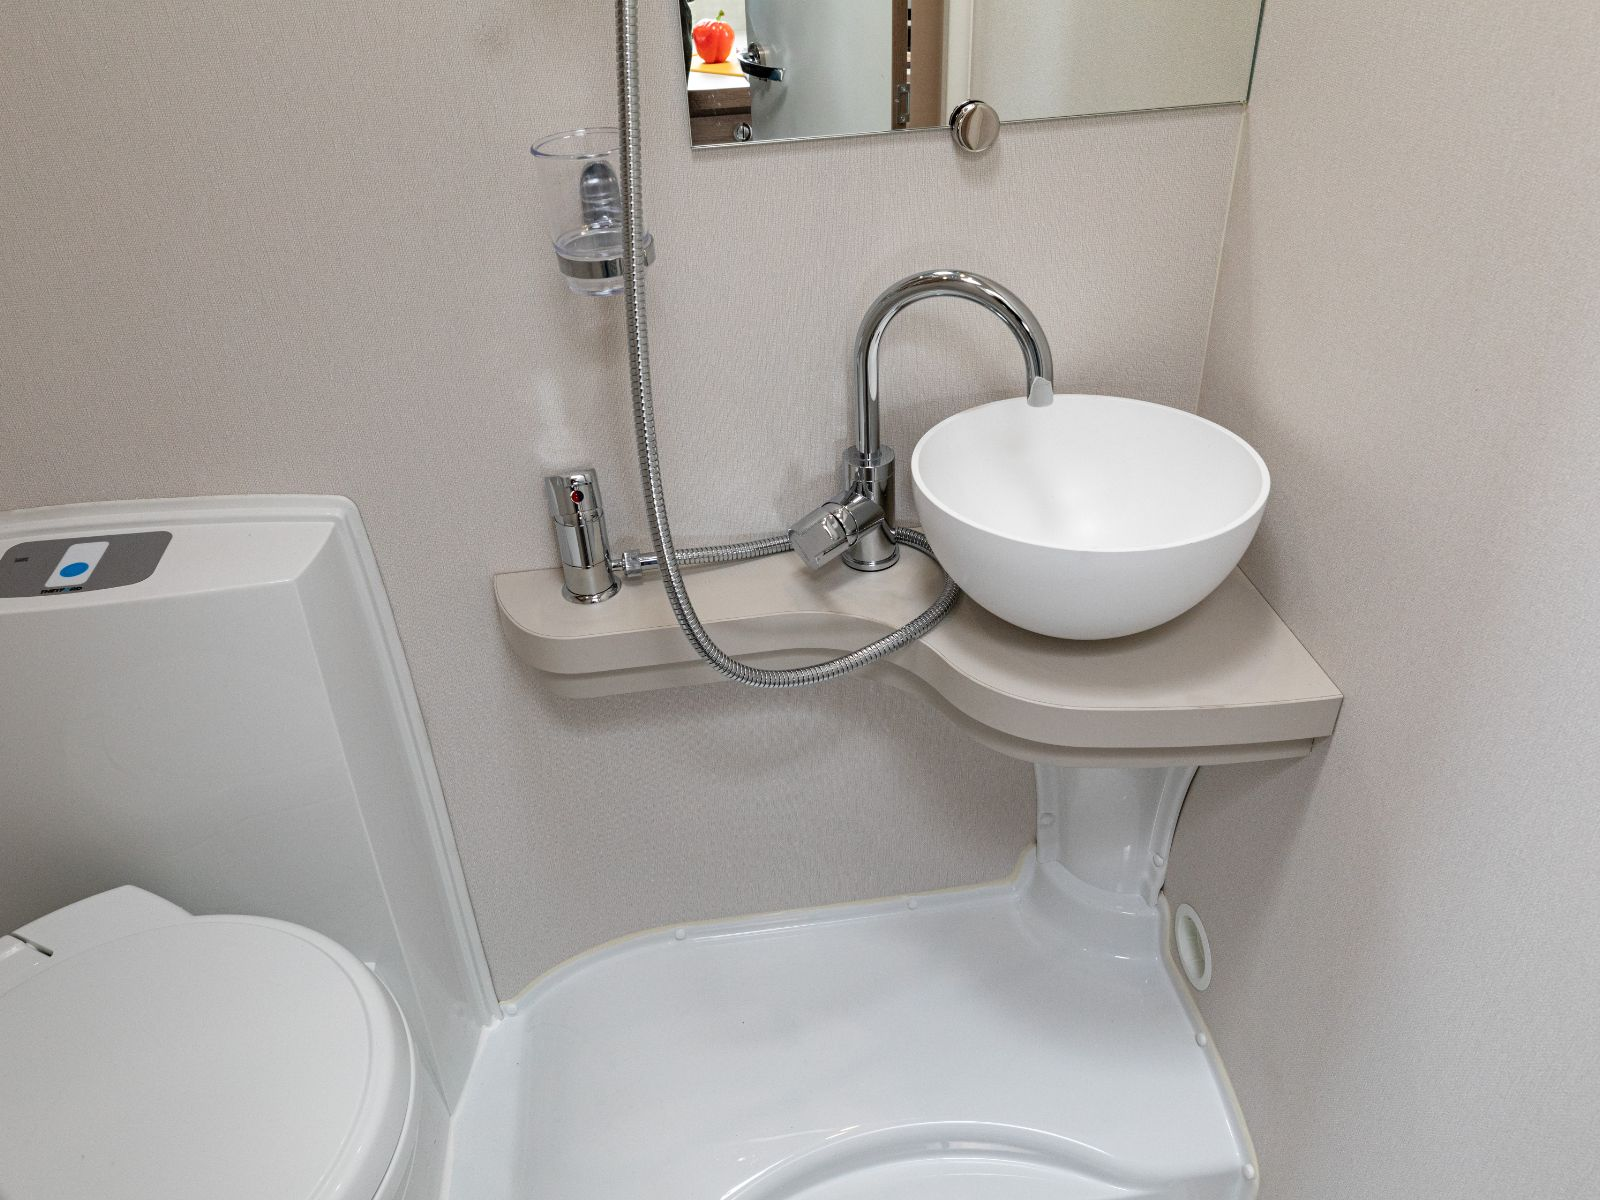 Bathroom with toilet, sink and shower '